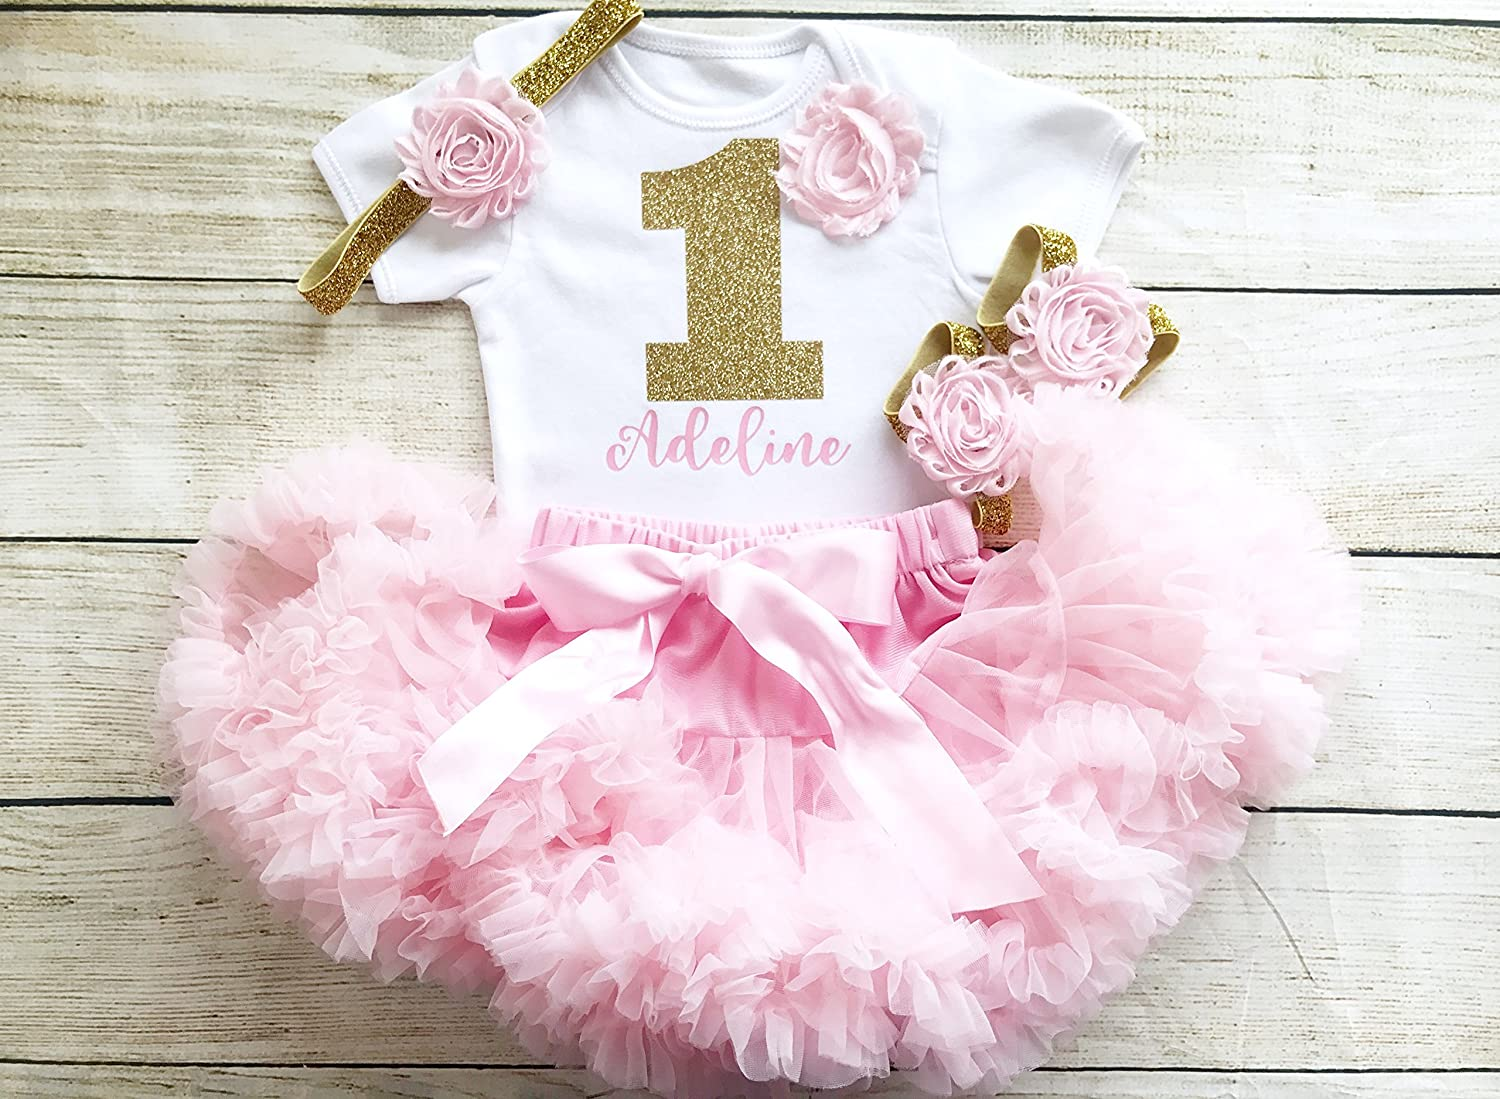 Personalised Pink & Gold First Birthday Tutu Outfit, Glitter Number, Matching Headband Barefoot Sandals Baby Girl, 1st Cake Smash